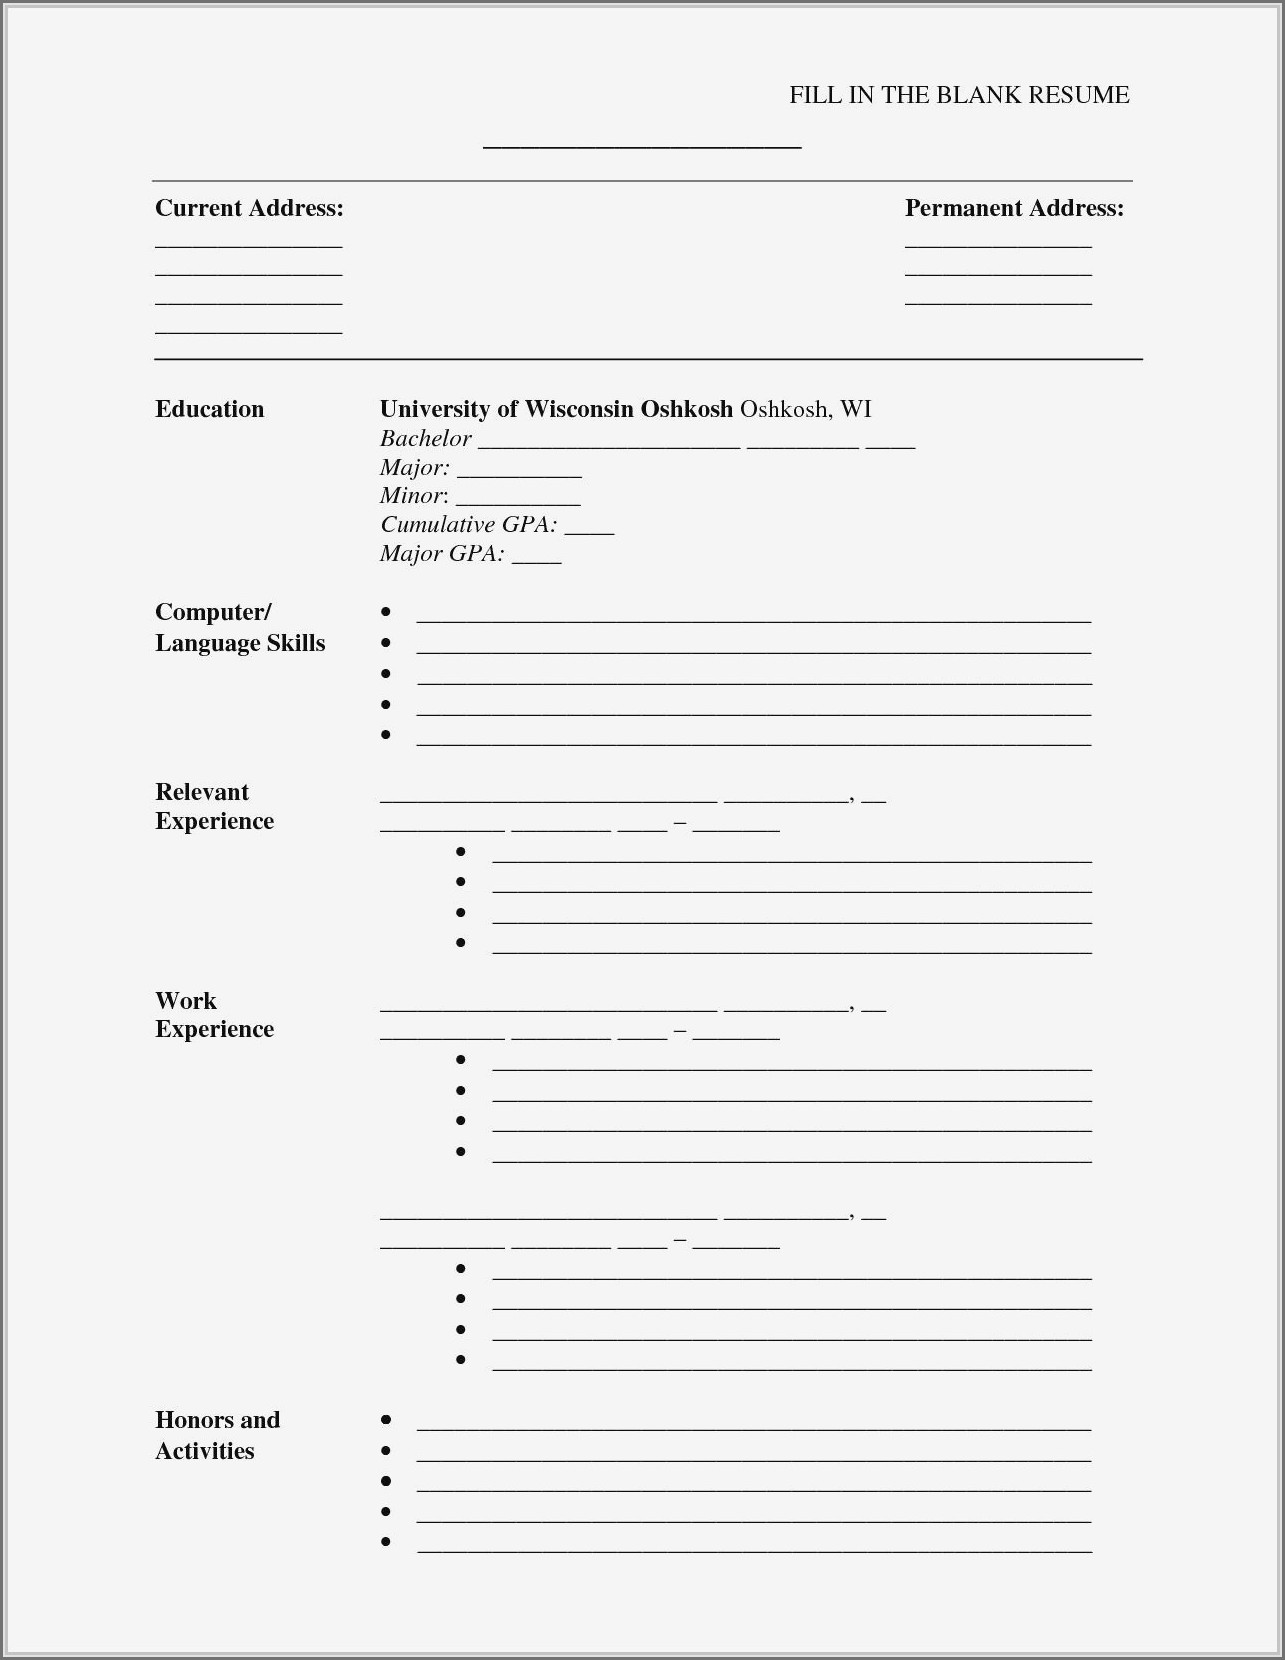 Blank Format Of Resume Download